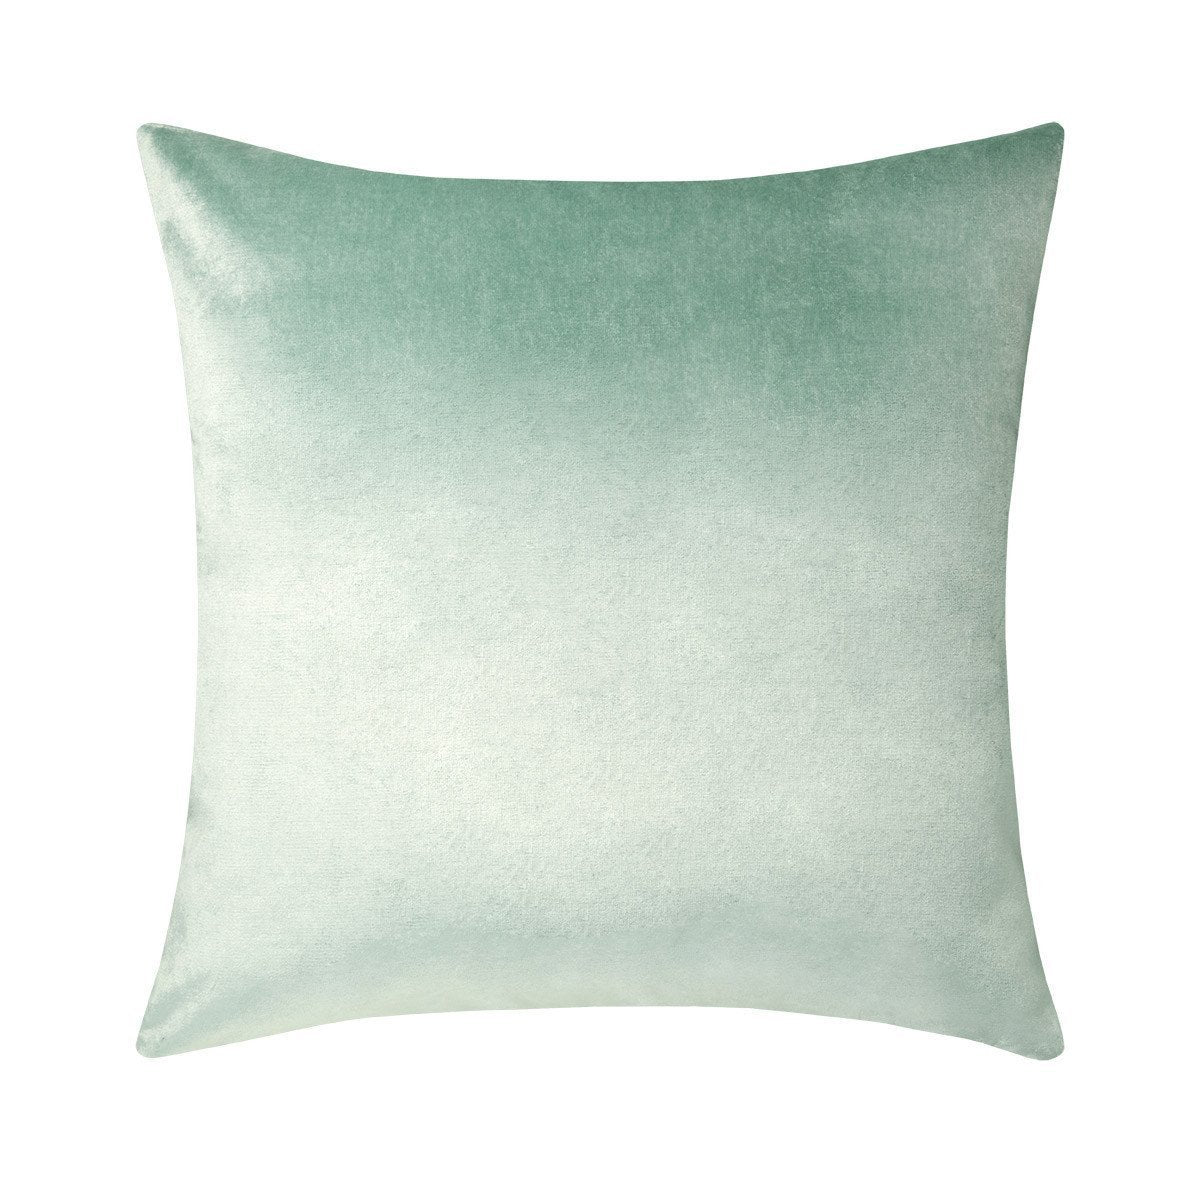 Berlingot Jade Decorative Pillow by Iosis